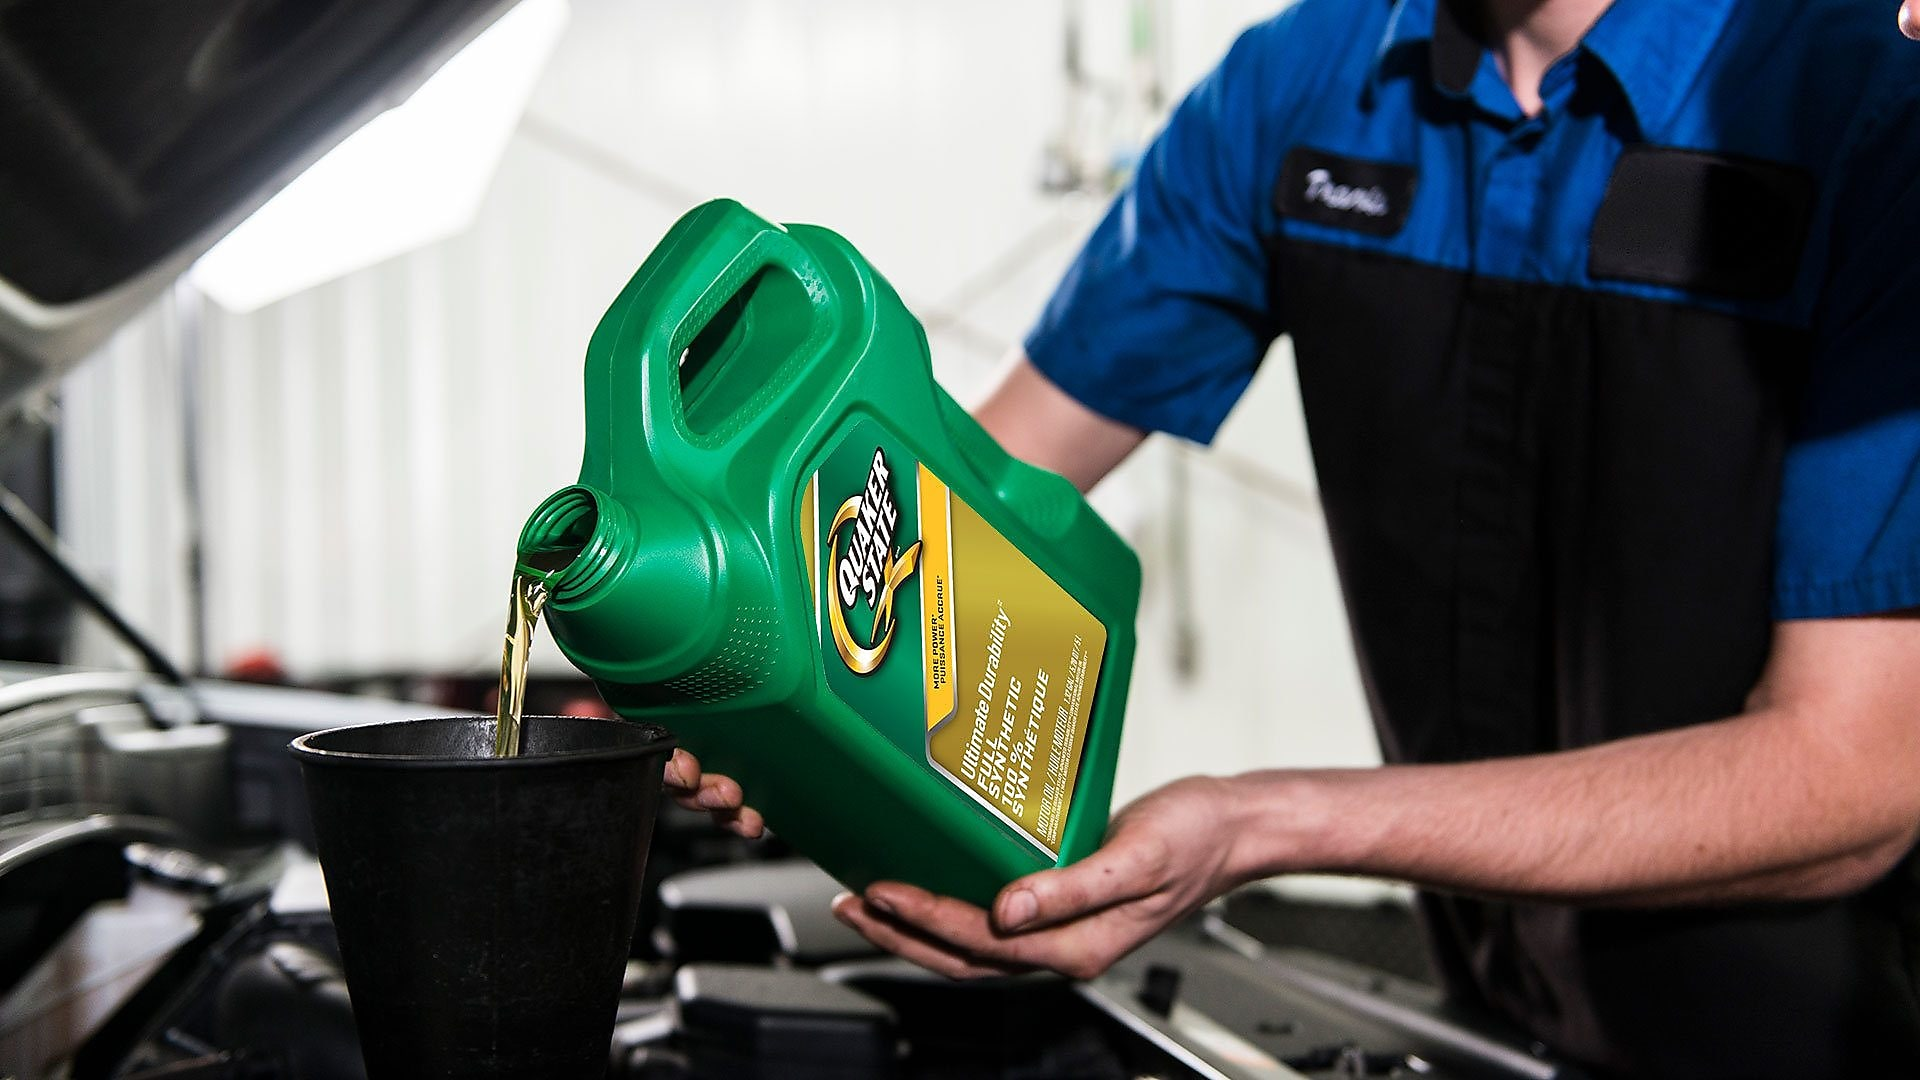 Save up to $10 on your next motor oil change